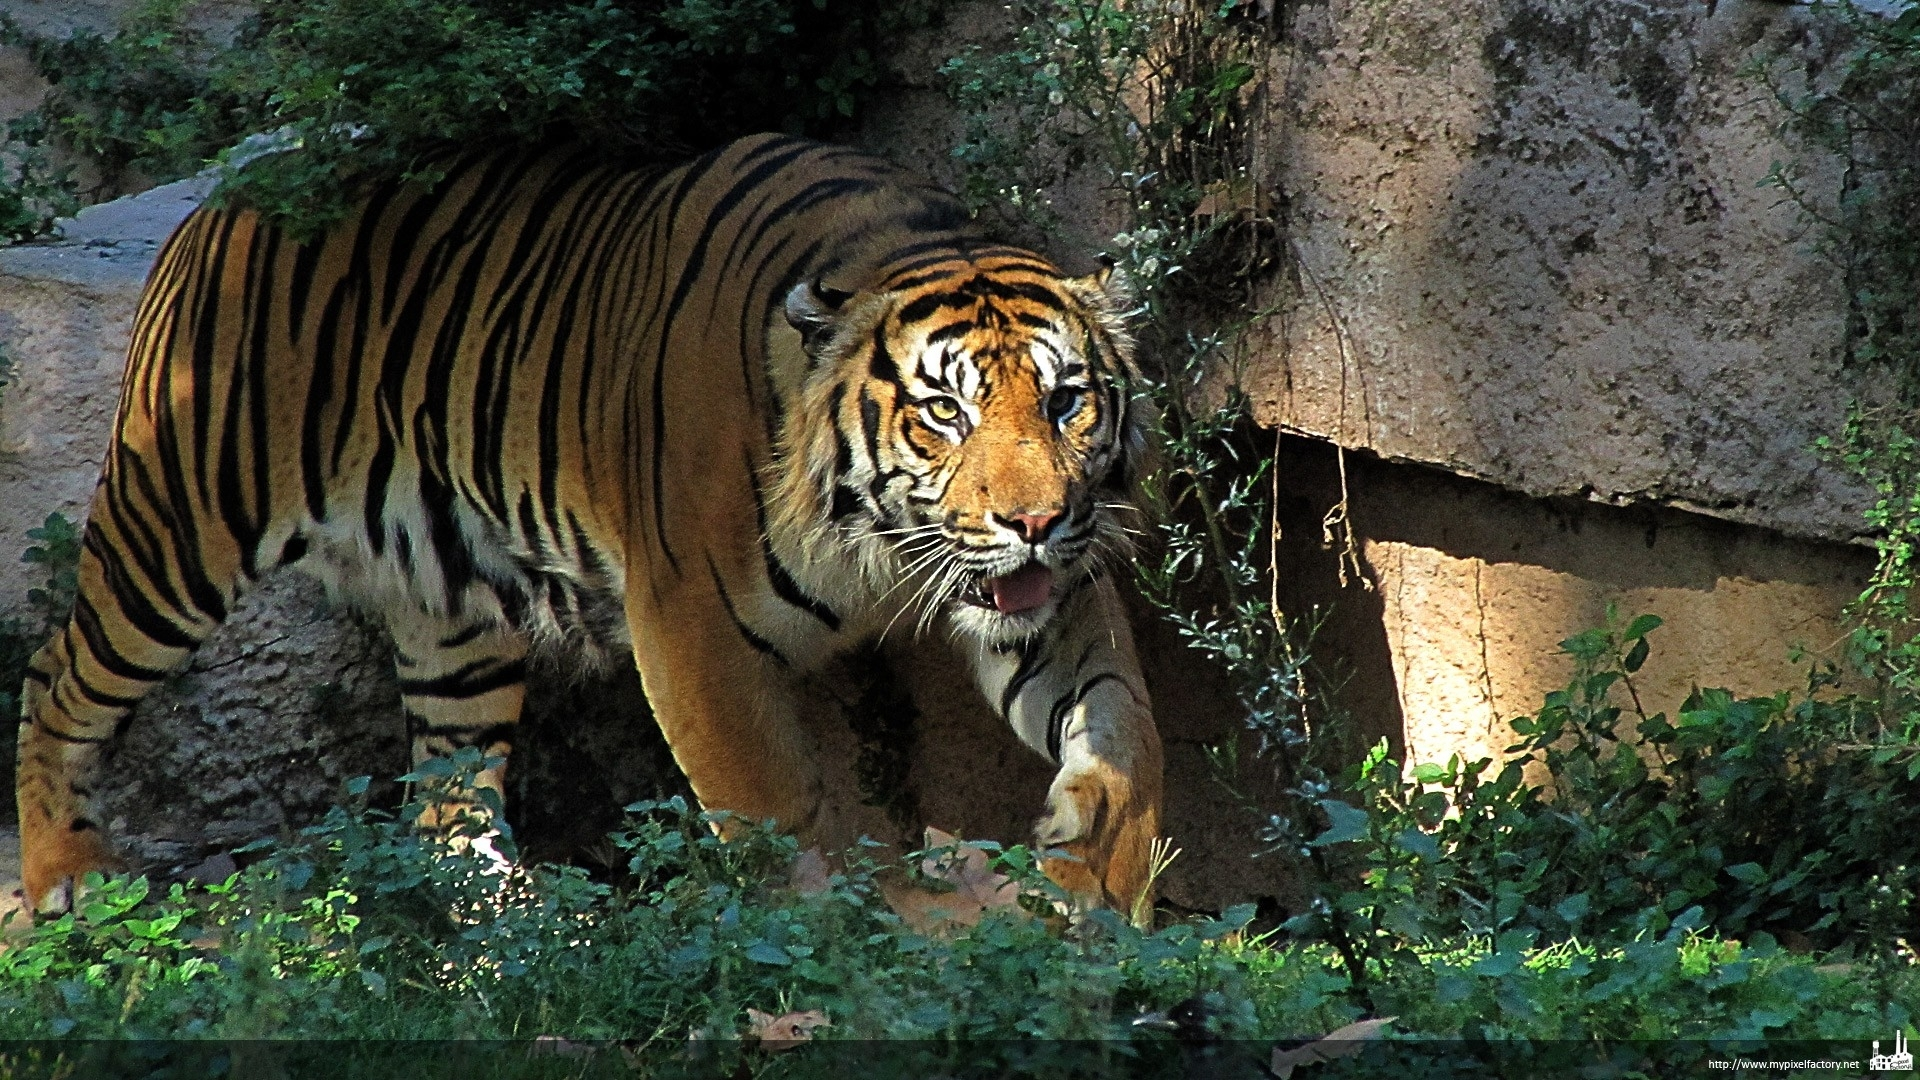 Tiger Animals Baby Animals Nature Wallpapers Hd: Tiger Full HD Wallpaper And Background